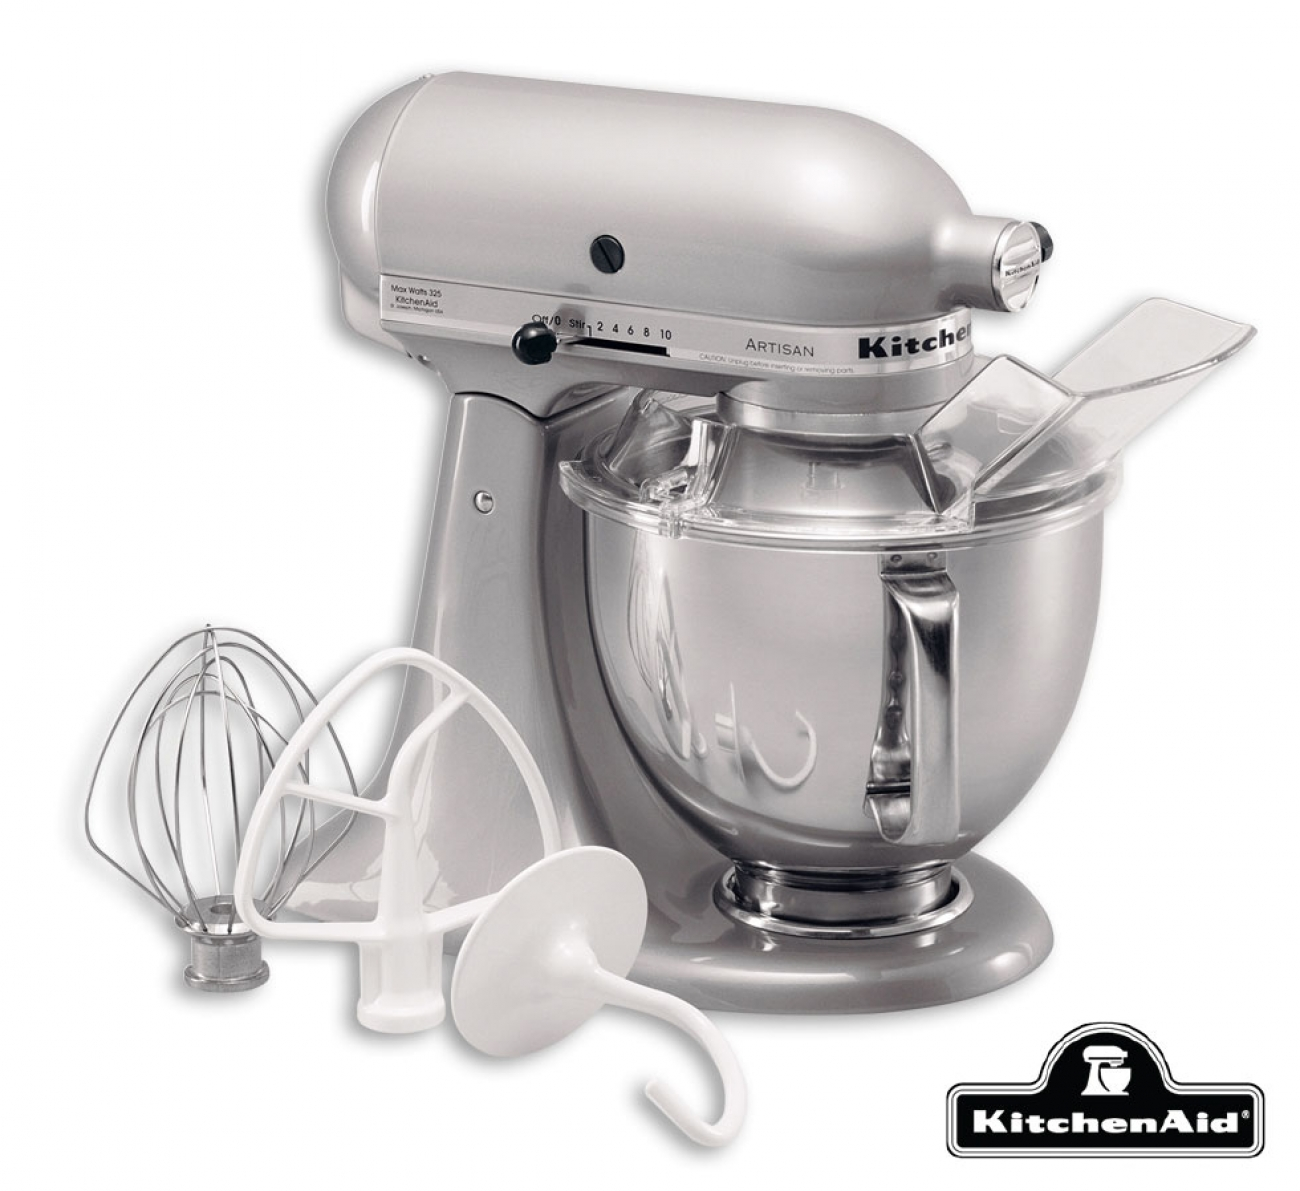 KitchenAid Artisan Tilt Head 5 Quart Stand Mixer